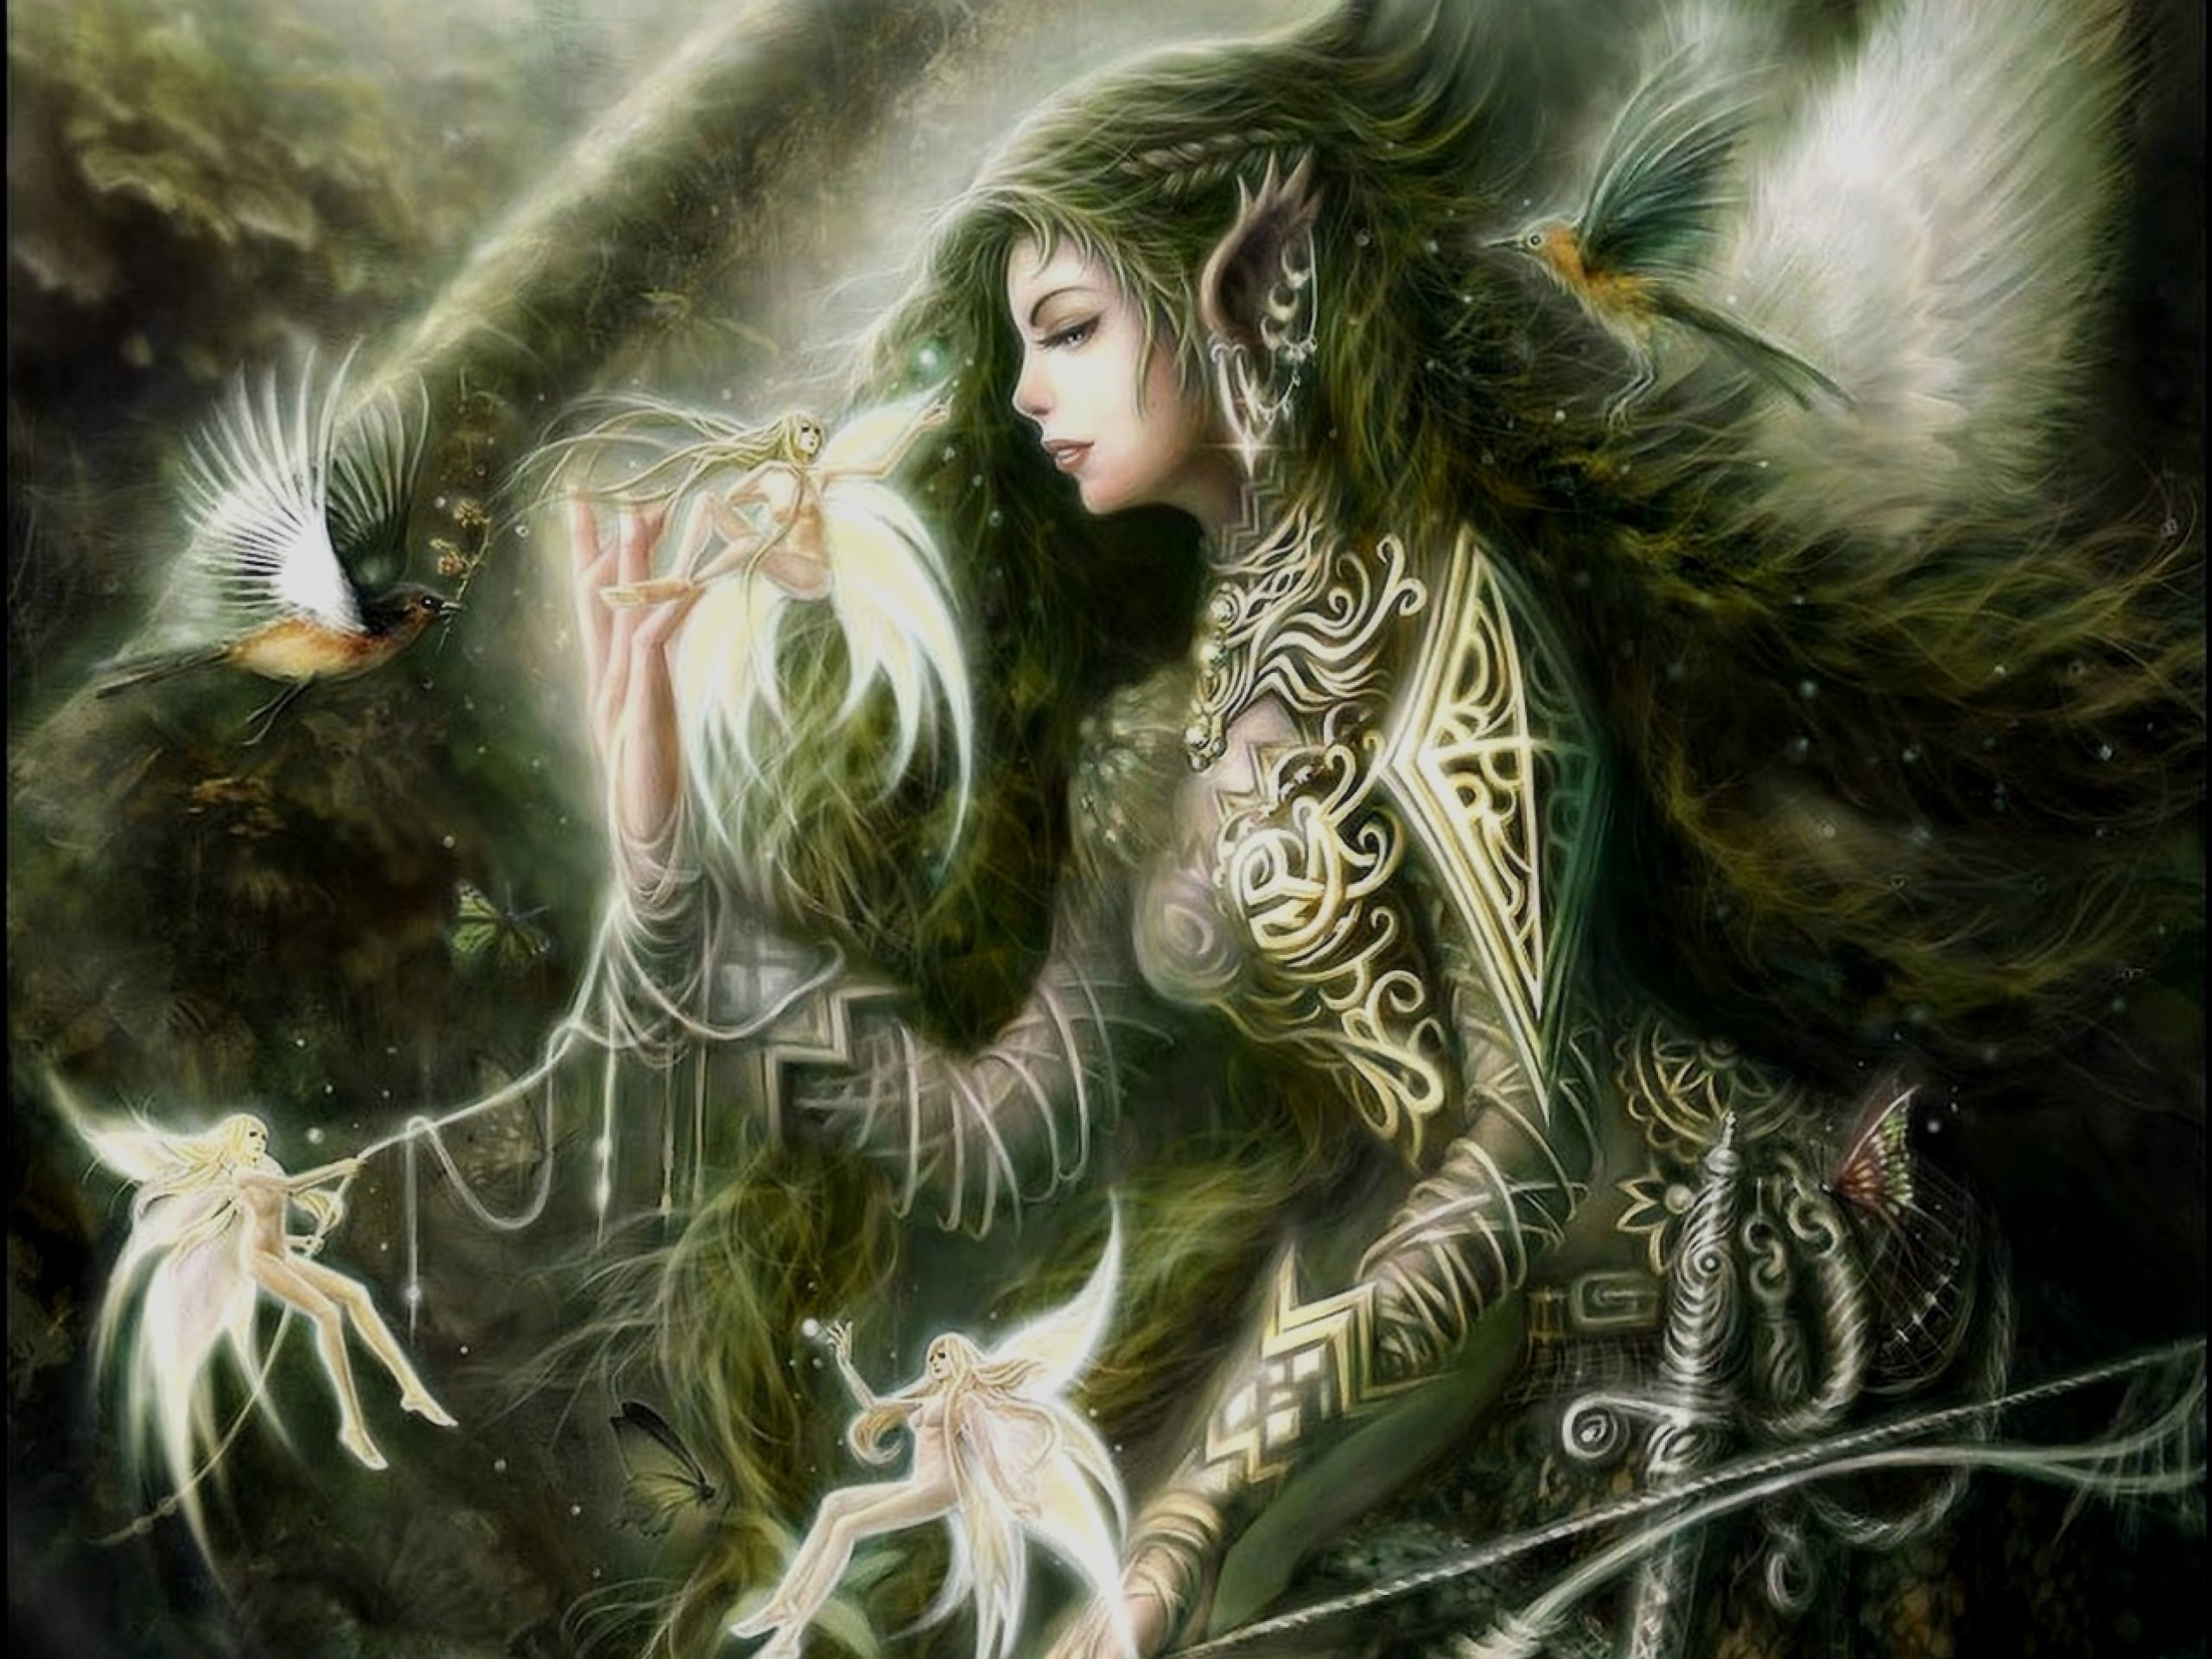 Download Fairy Gothic Hd Wallpapers For Free Angel Warrior